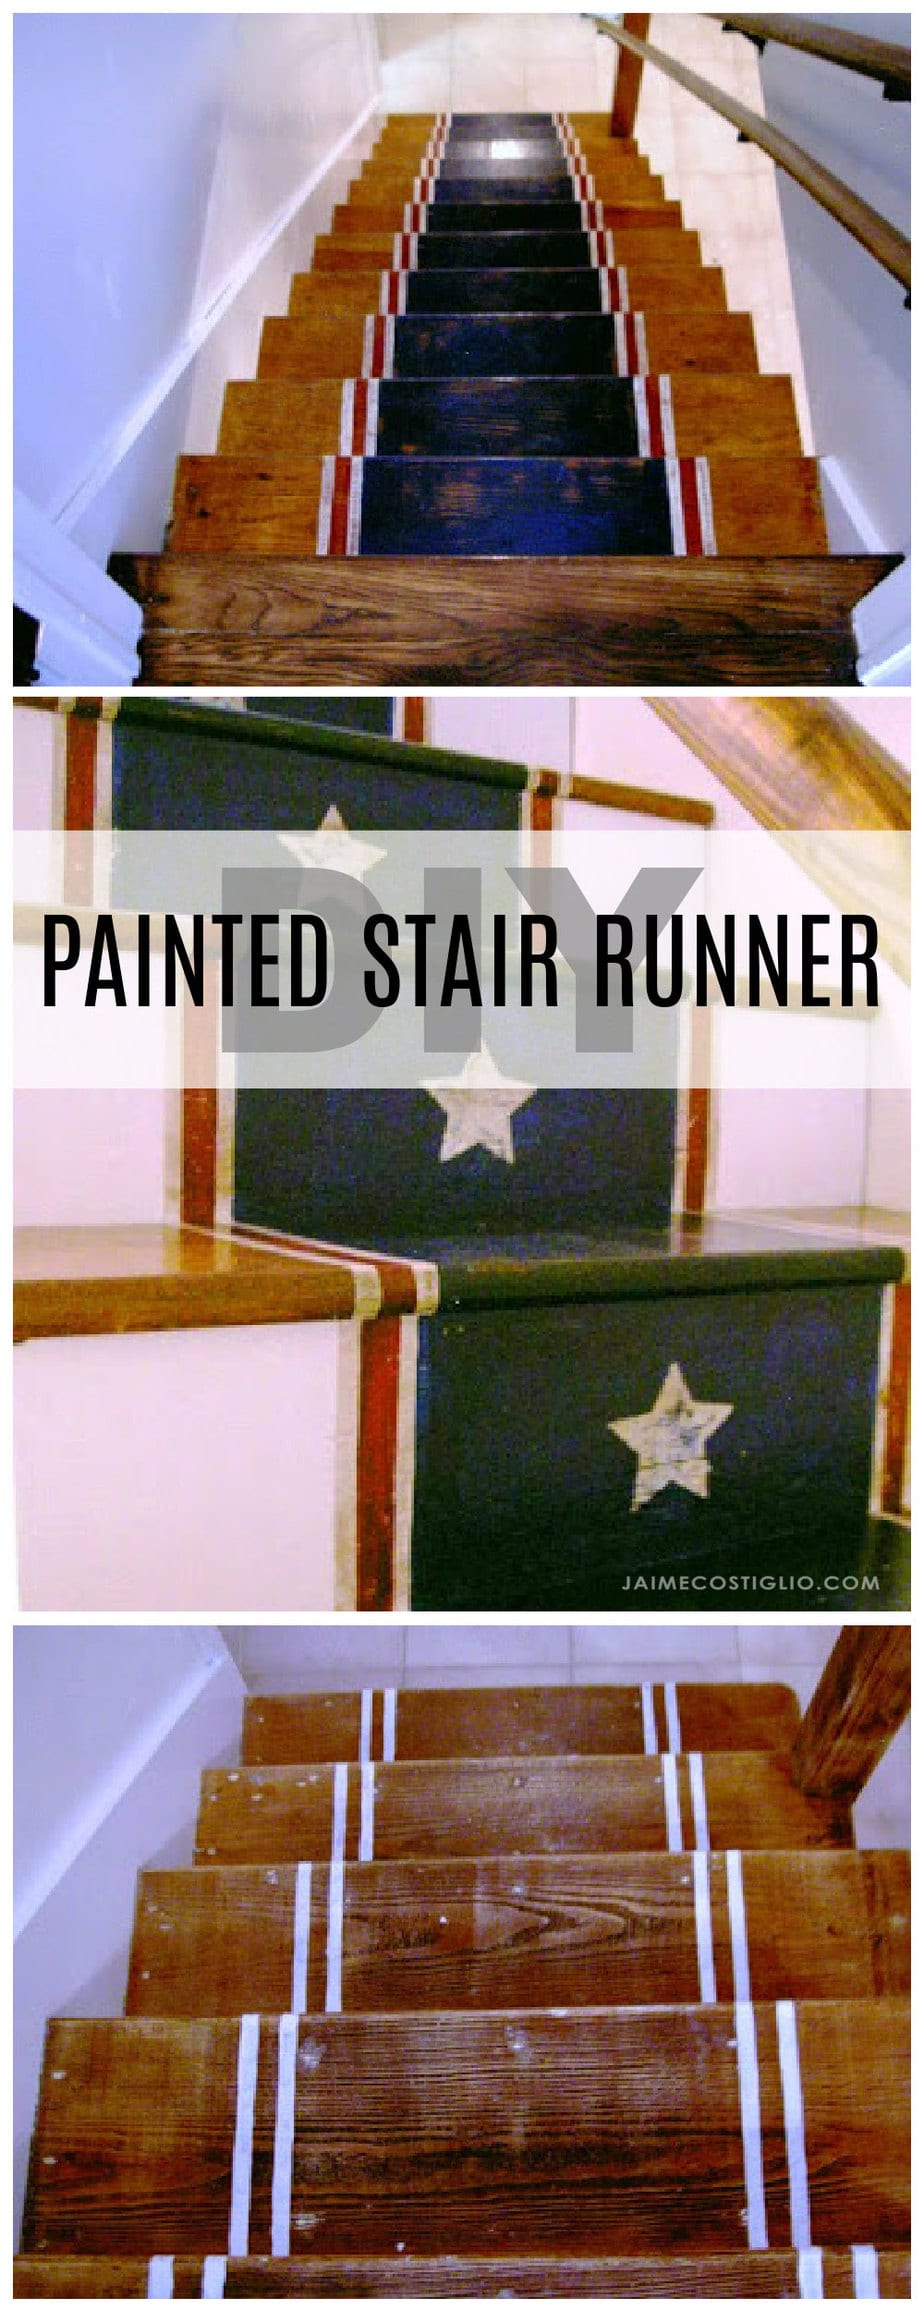 painted stair runner collage